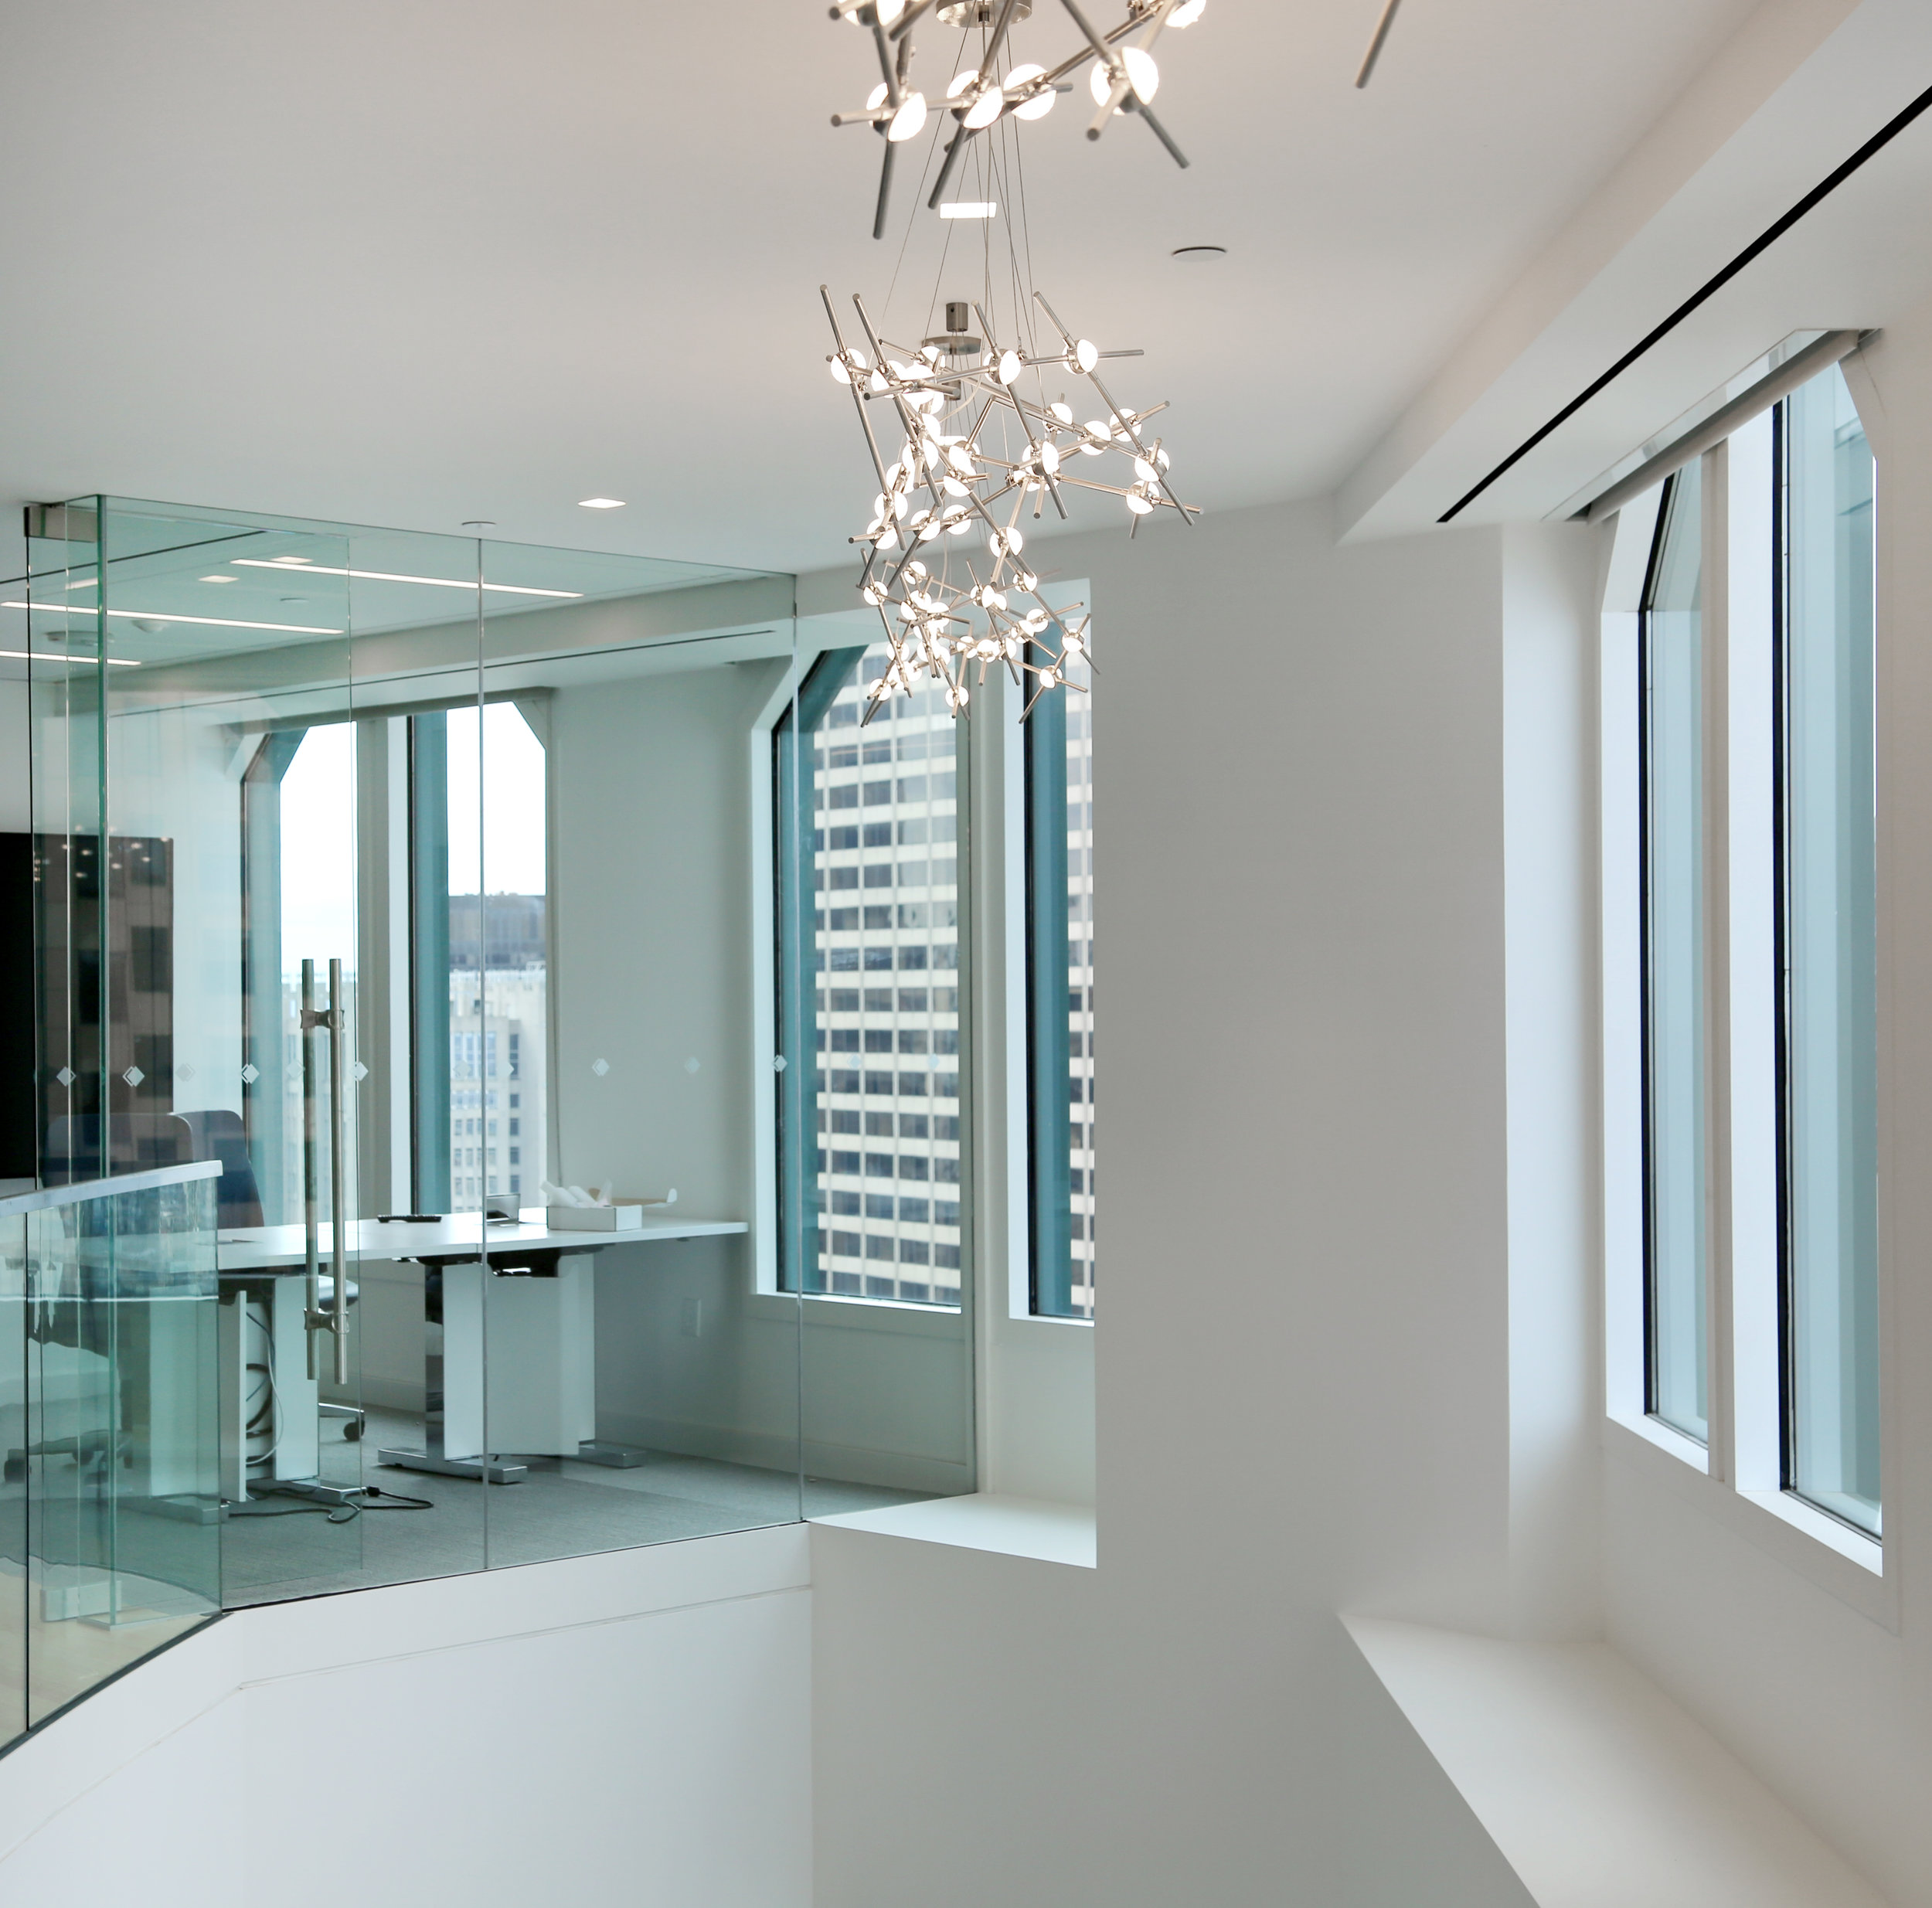 Frameless Glass Floating Wall System Above Stair - Spaceworks AI.jpg